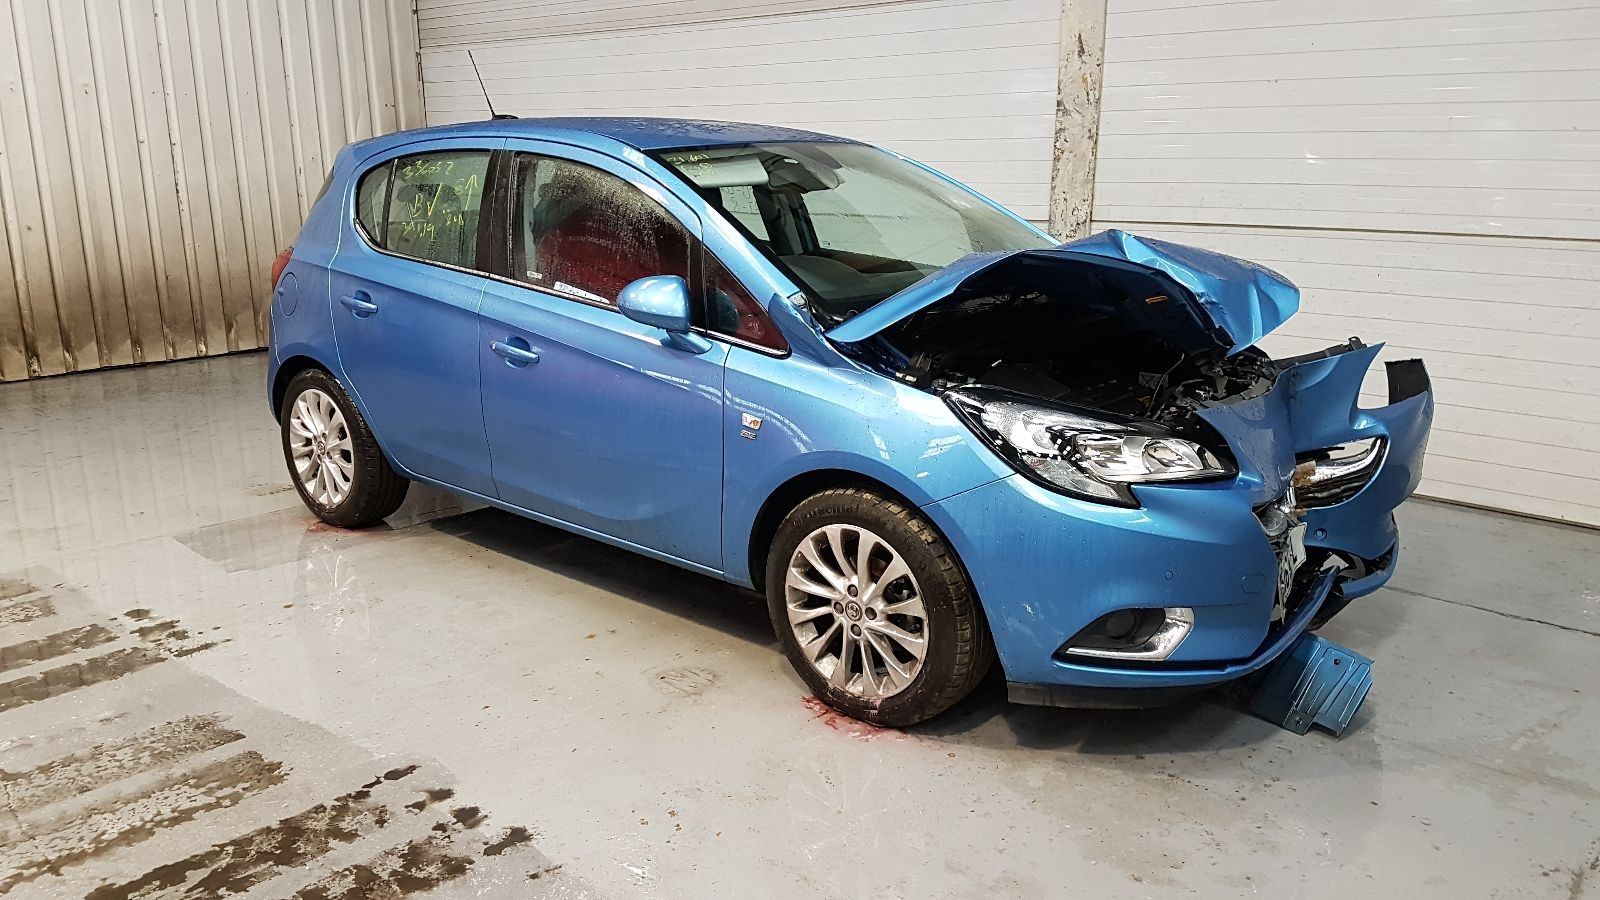 Image for a 2016 Vauxhall Corsa 1.4 Petrol B14XEL Engine